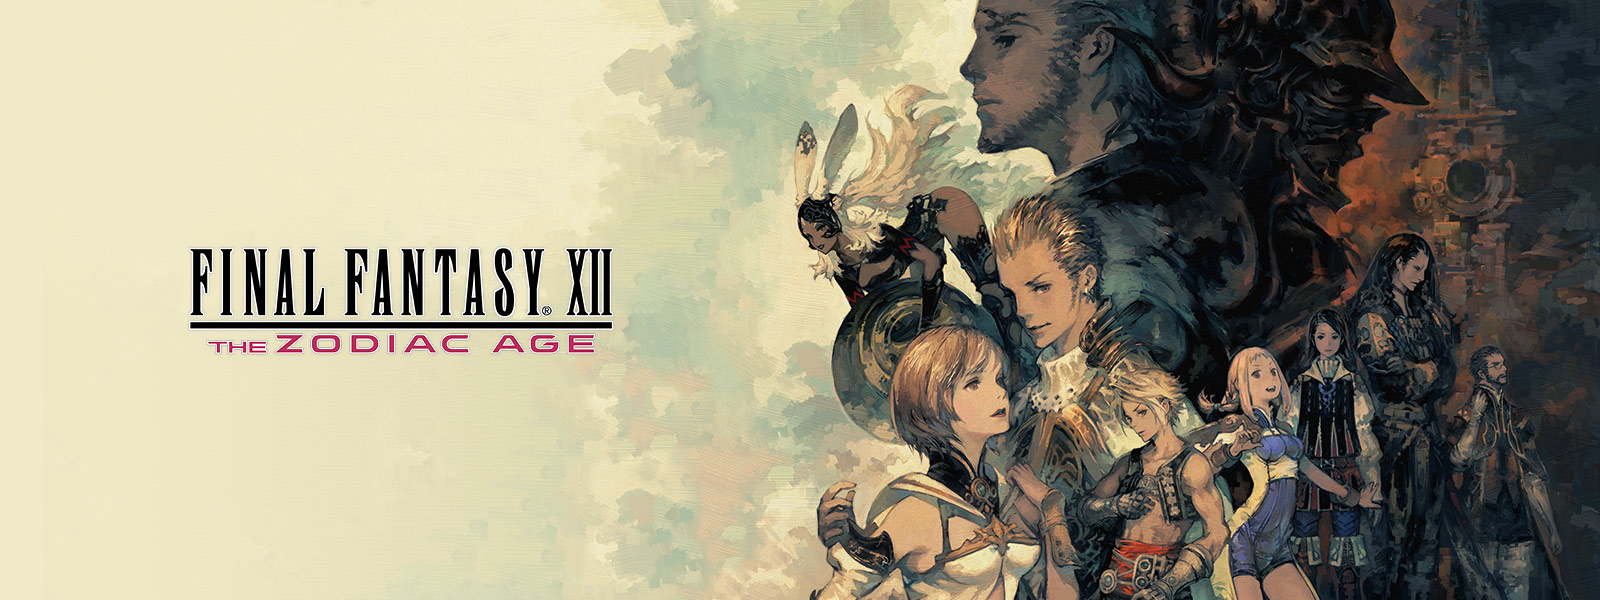 Fotomontáž postav z FINAL FANTASY XII THE ZODIAC AGE